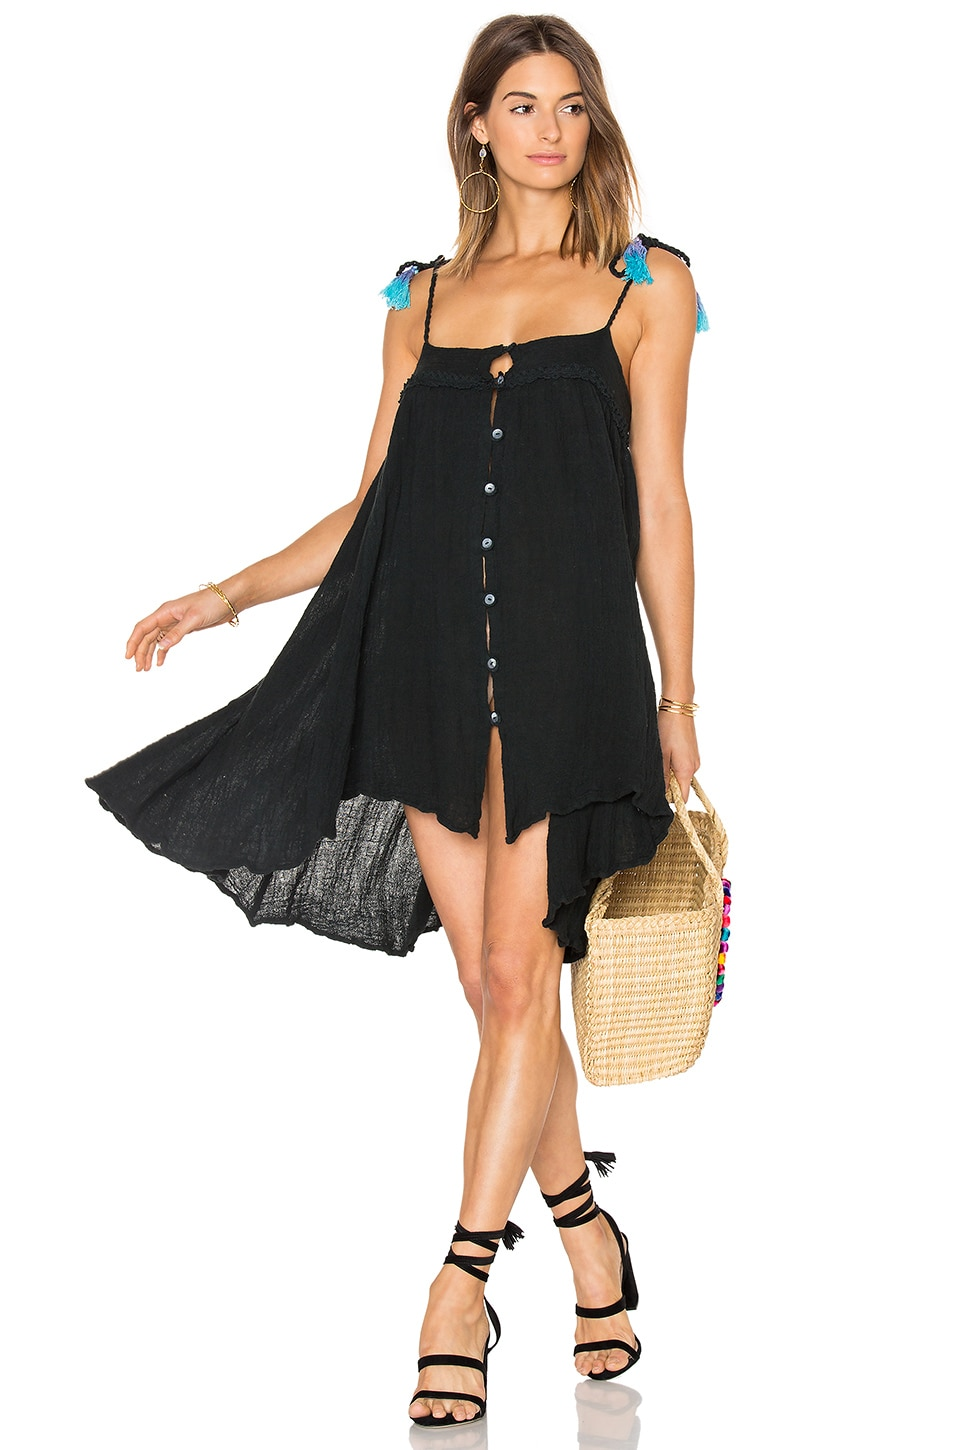 Jen's Pirate Booty Merida Dress in Black & Teal Tassel